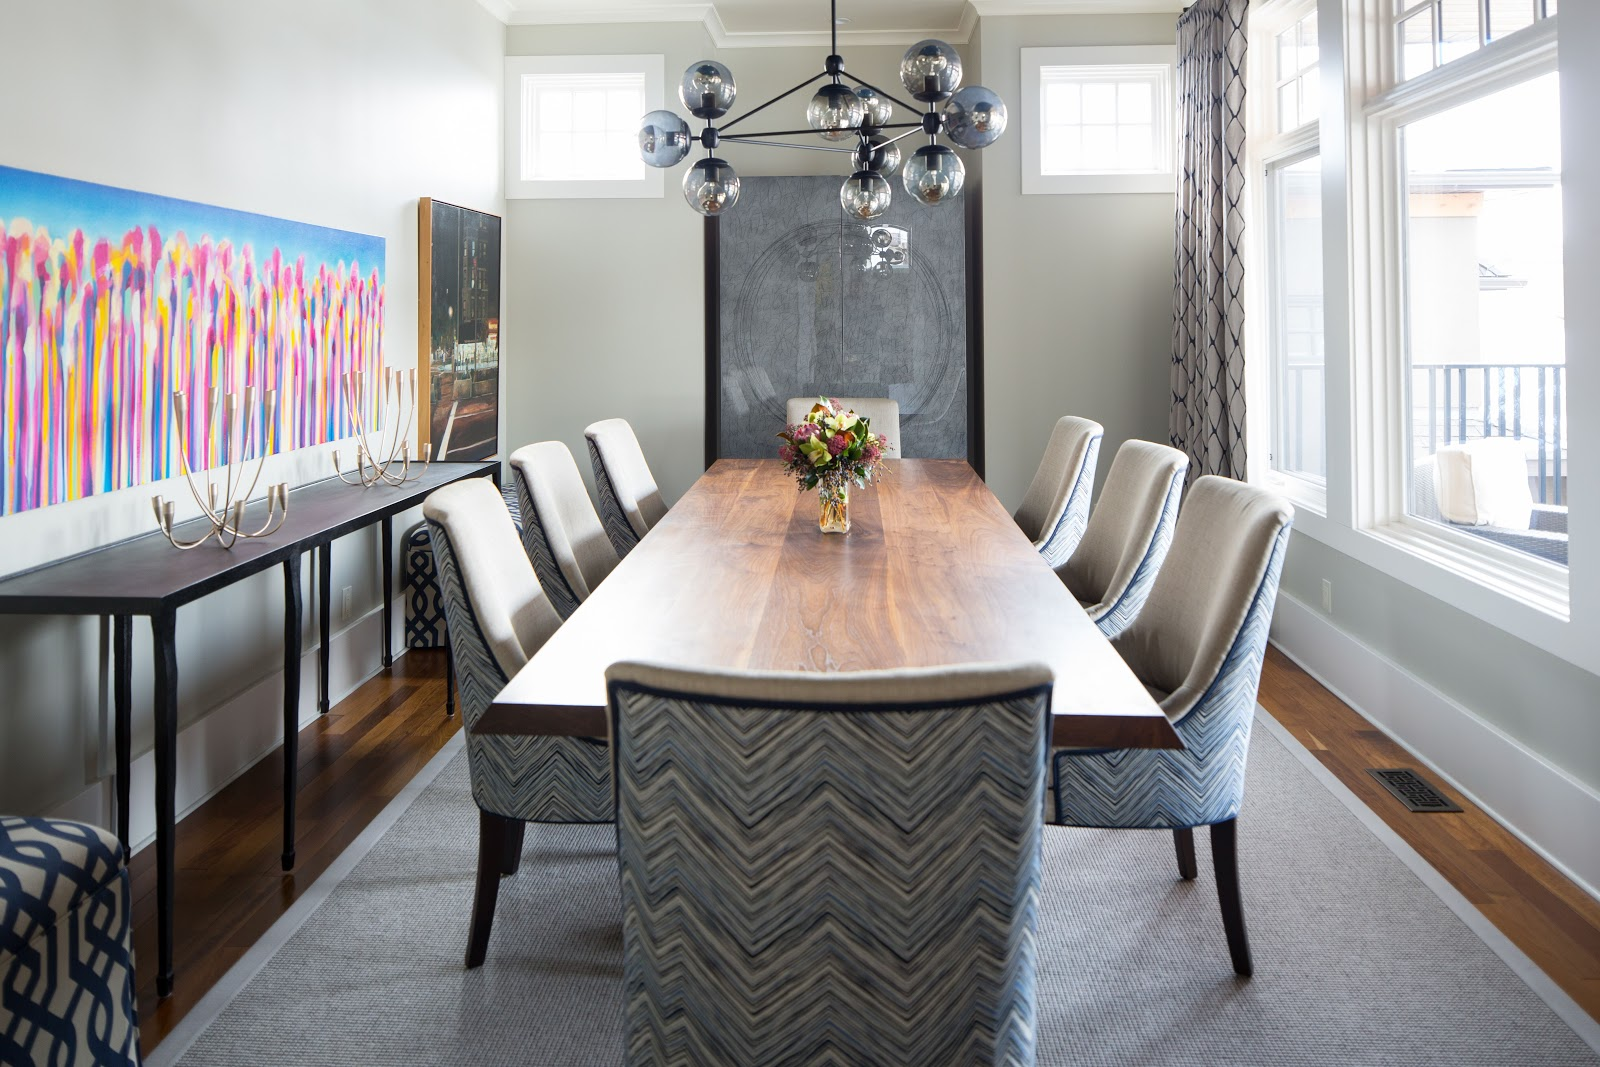 calgary interior design firm dining room area rug patterned gray classic timeless elegant